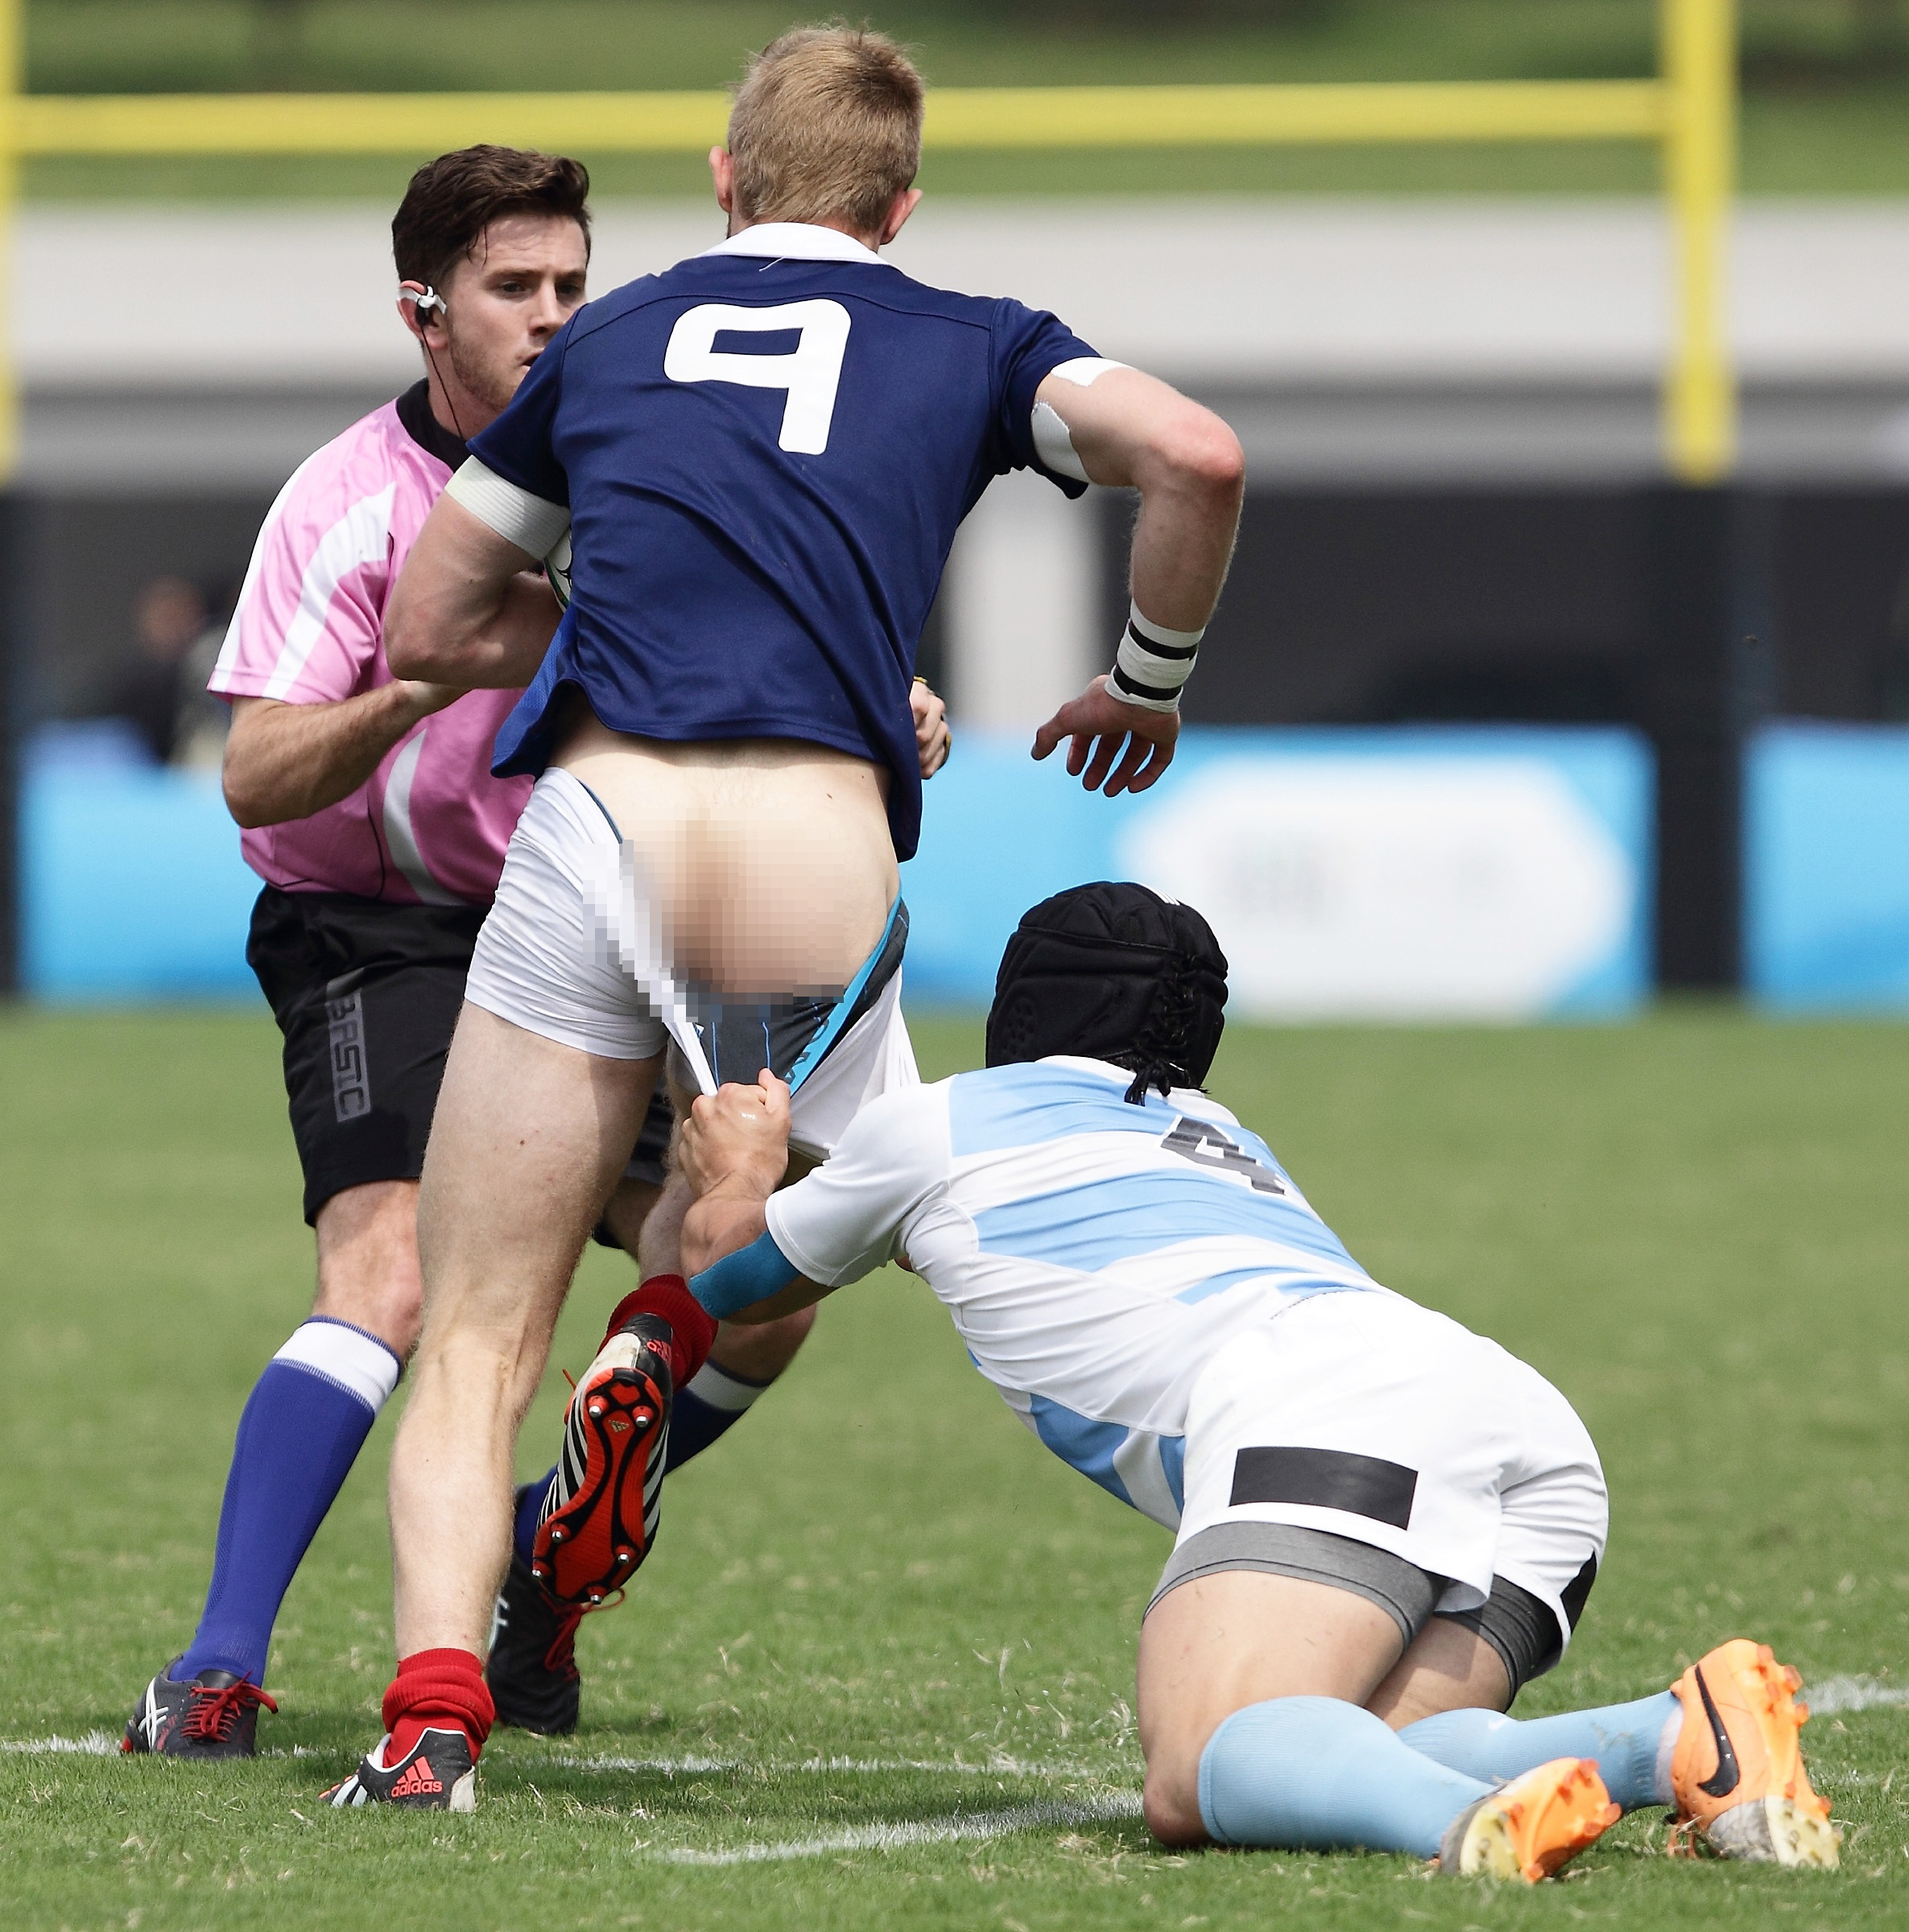 Conil Ignacio of Argentina pulls down Faraj Fartass of France during the Rugby Sevens final on day four of the Nanjing 2014 Summer Youth Olympic Games at the Olympic Sports Park